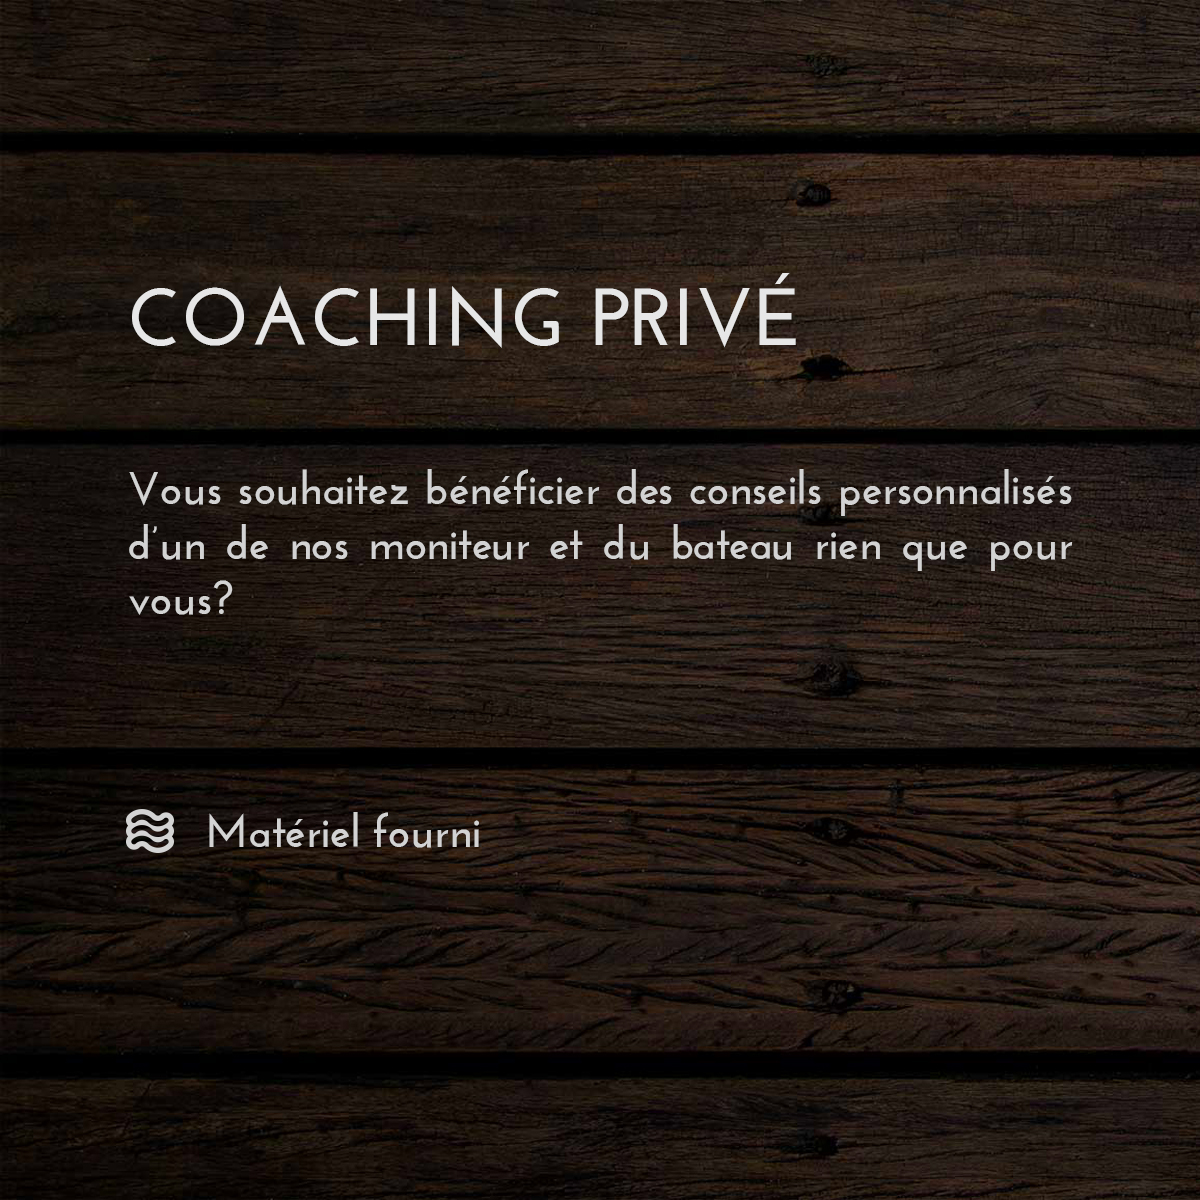 Coaching privé wakeboard